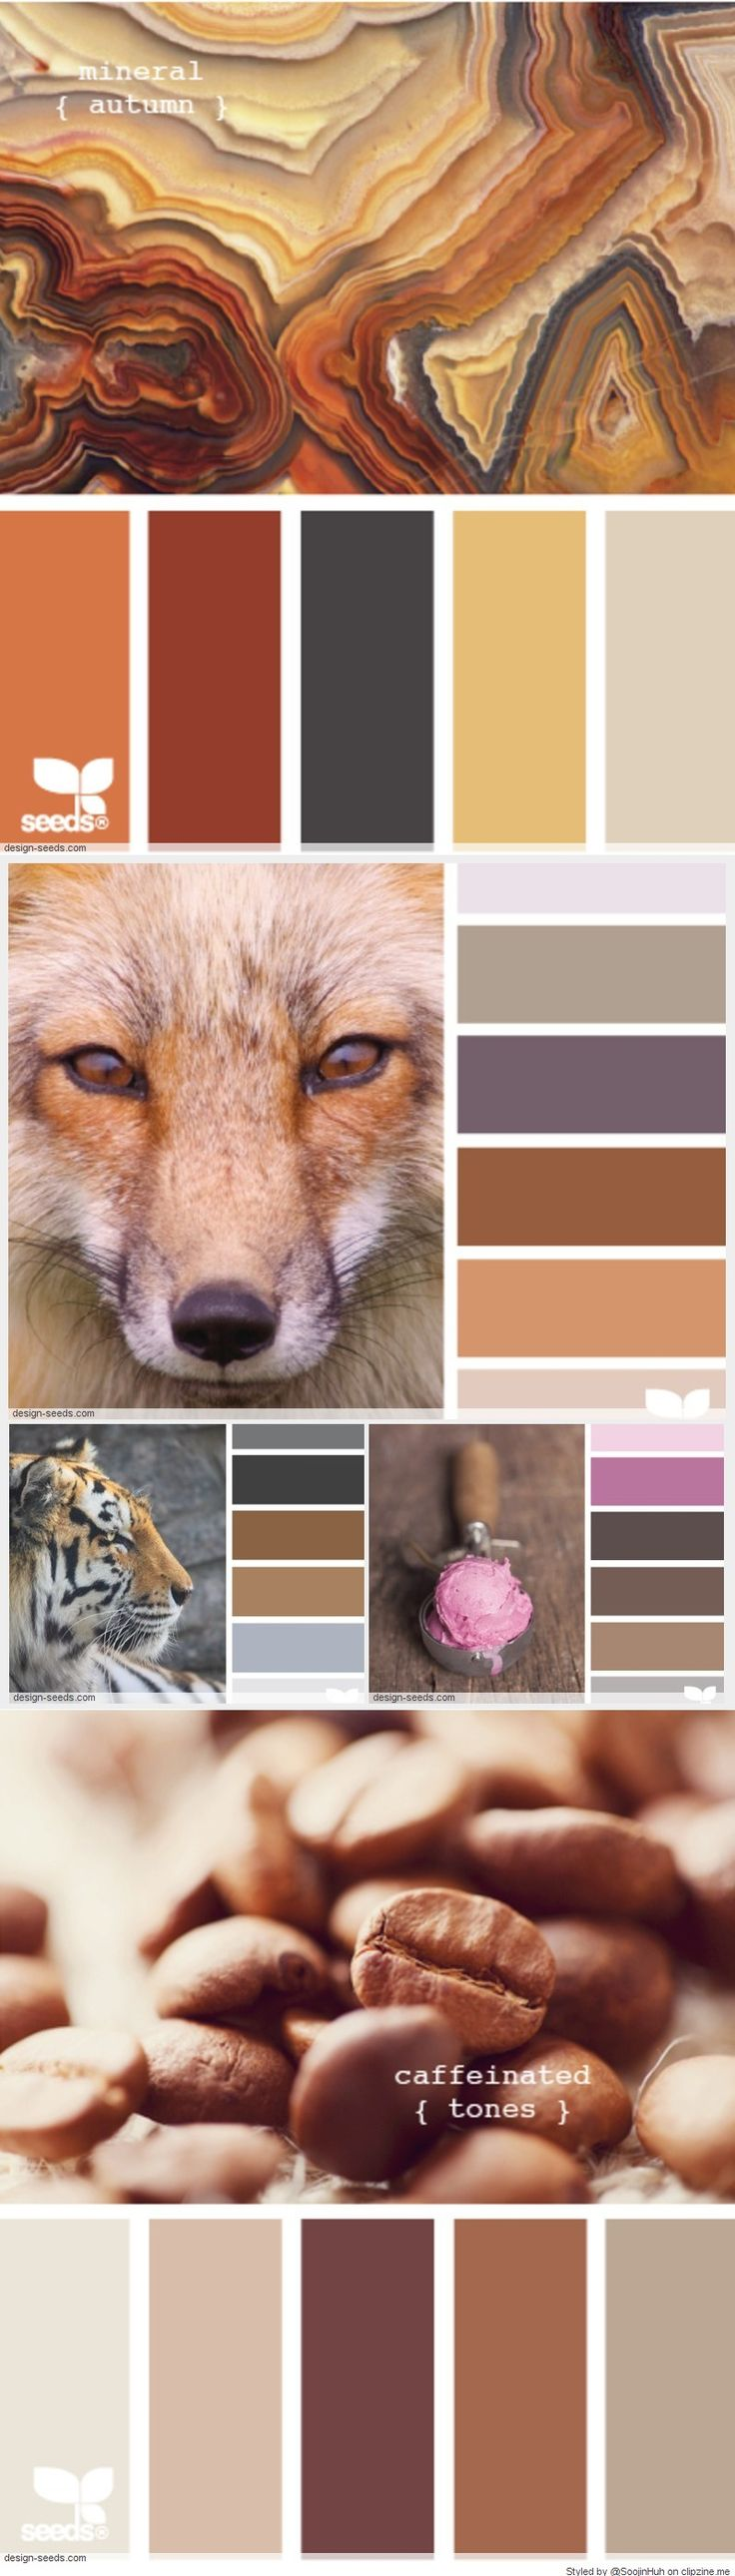 Warm Color Palette Amazing Best 25 Warm Color Palettes Ideas On Pinterest  Warm Colors Design Inspiration